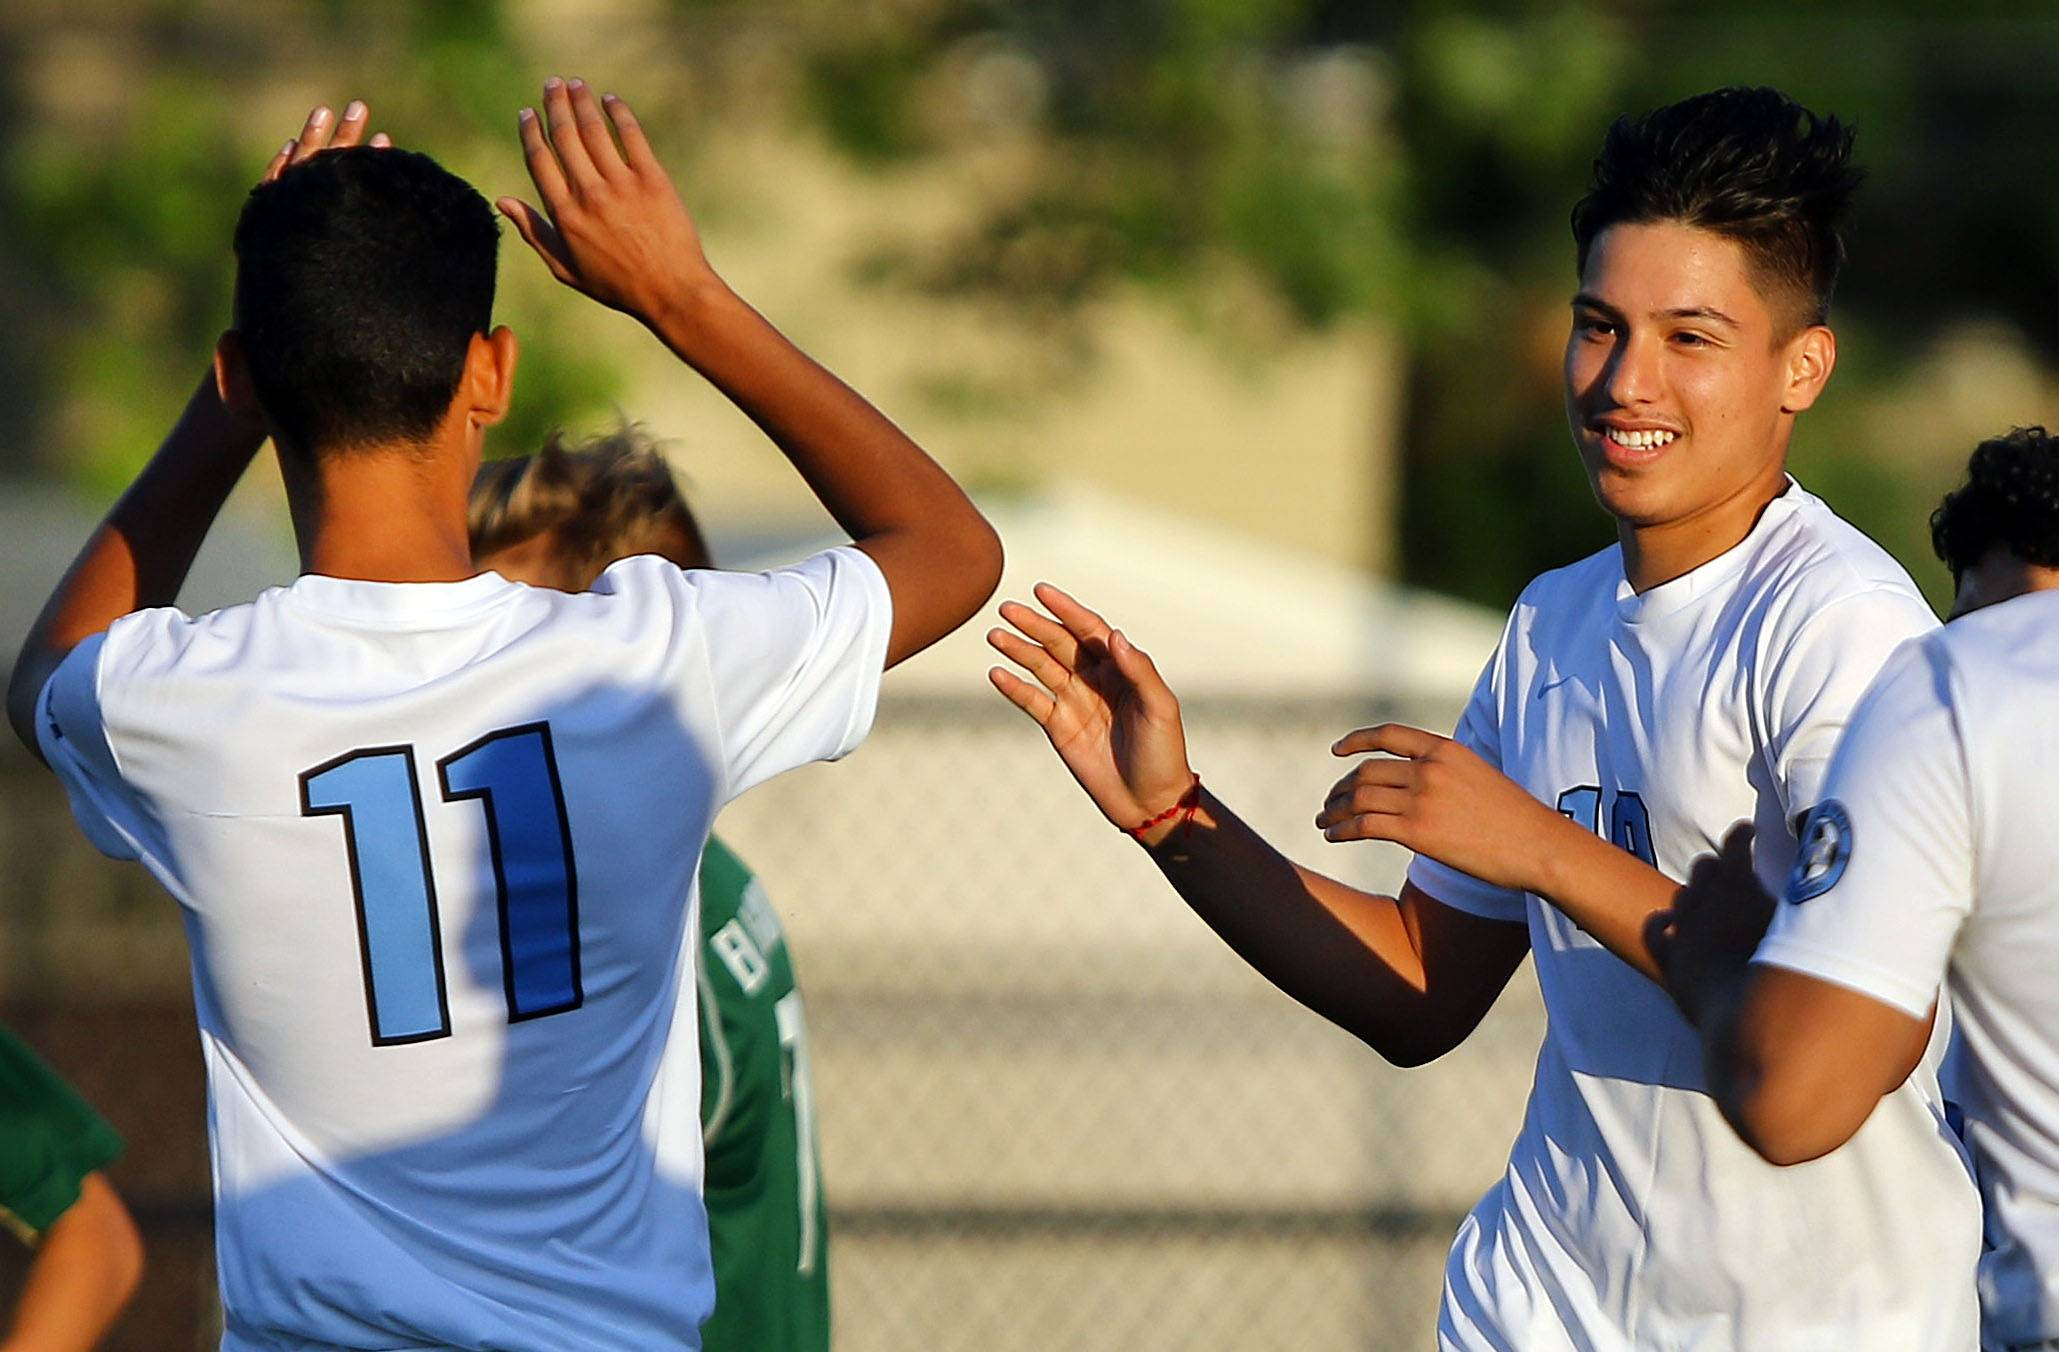 Maine West's Jason Ybrra (11) high-fives Osmar Vega after his goal against Elk Grove on Tuesday in Des Plaines.